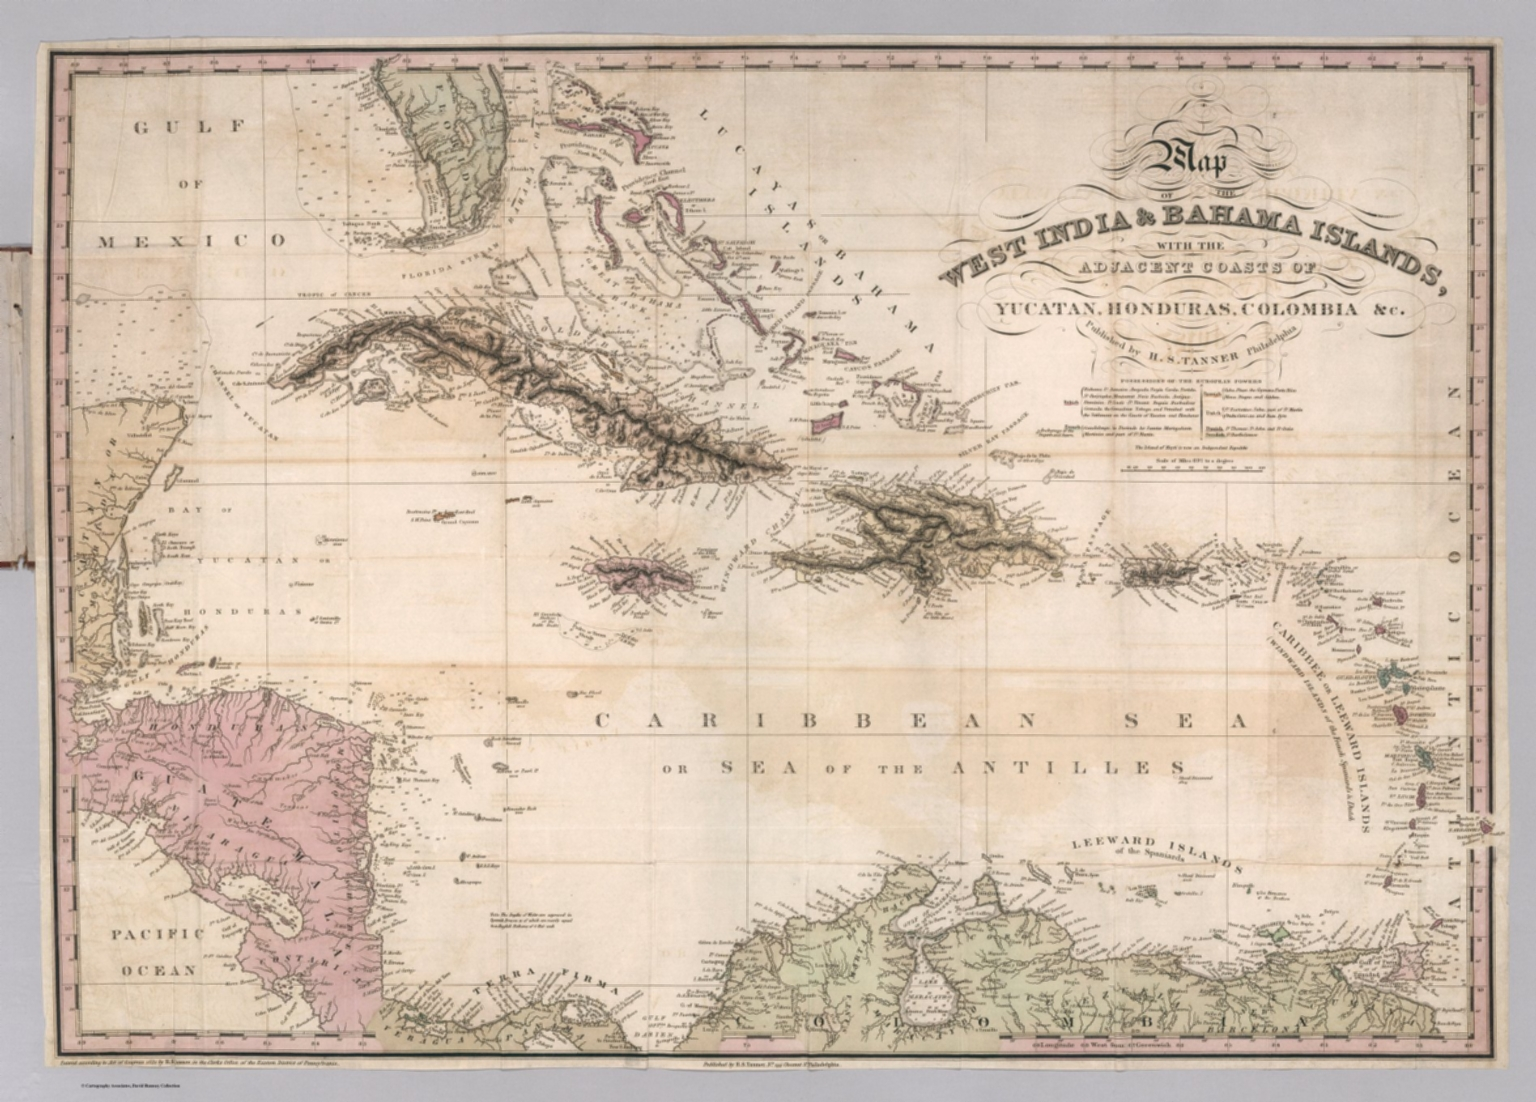 Map of the West India & Bahama Islands - David Rumsey ... Images Of West India Map on map of united kingdom, map south india, map of united arab emirates, map of iran, map of singapore, map of rajasthan, map of khajuraho, map of mumbai, map of gujarat, map of pakistan, map of burma, map of goa, map of bihar, map of kerala, map of kolkata, map of assam, world map india, map of delhi, map of yemen, map of varanasi,